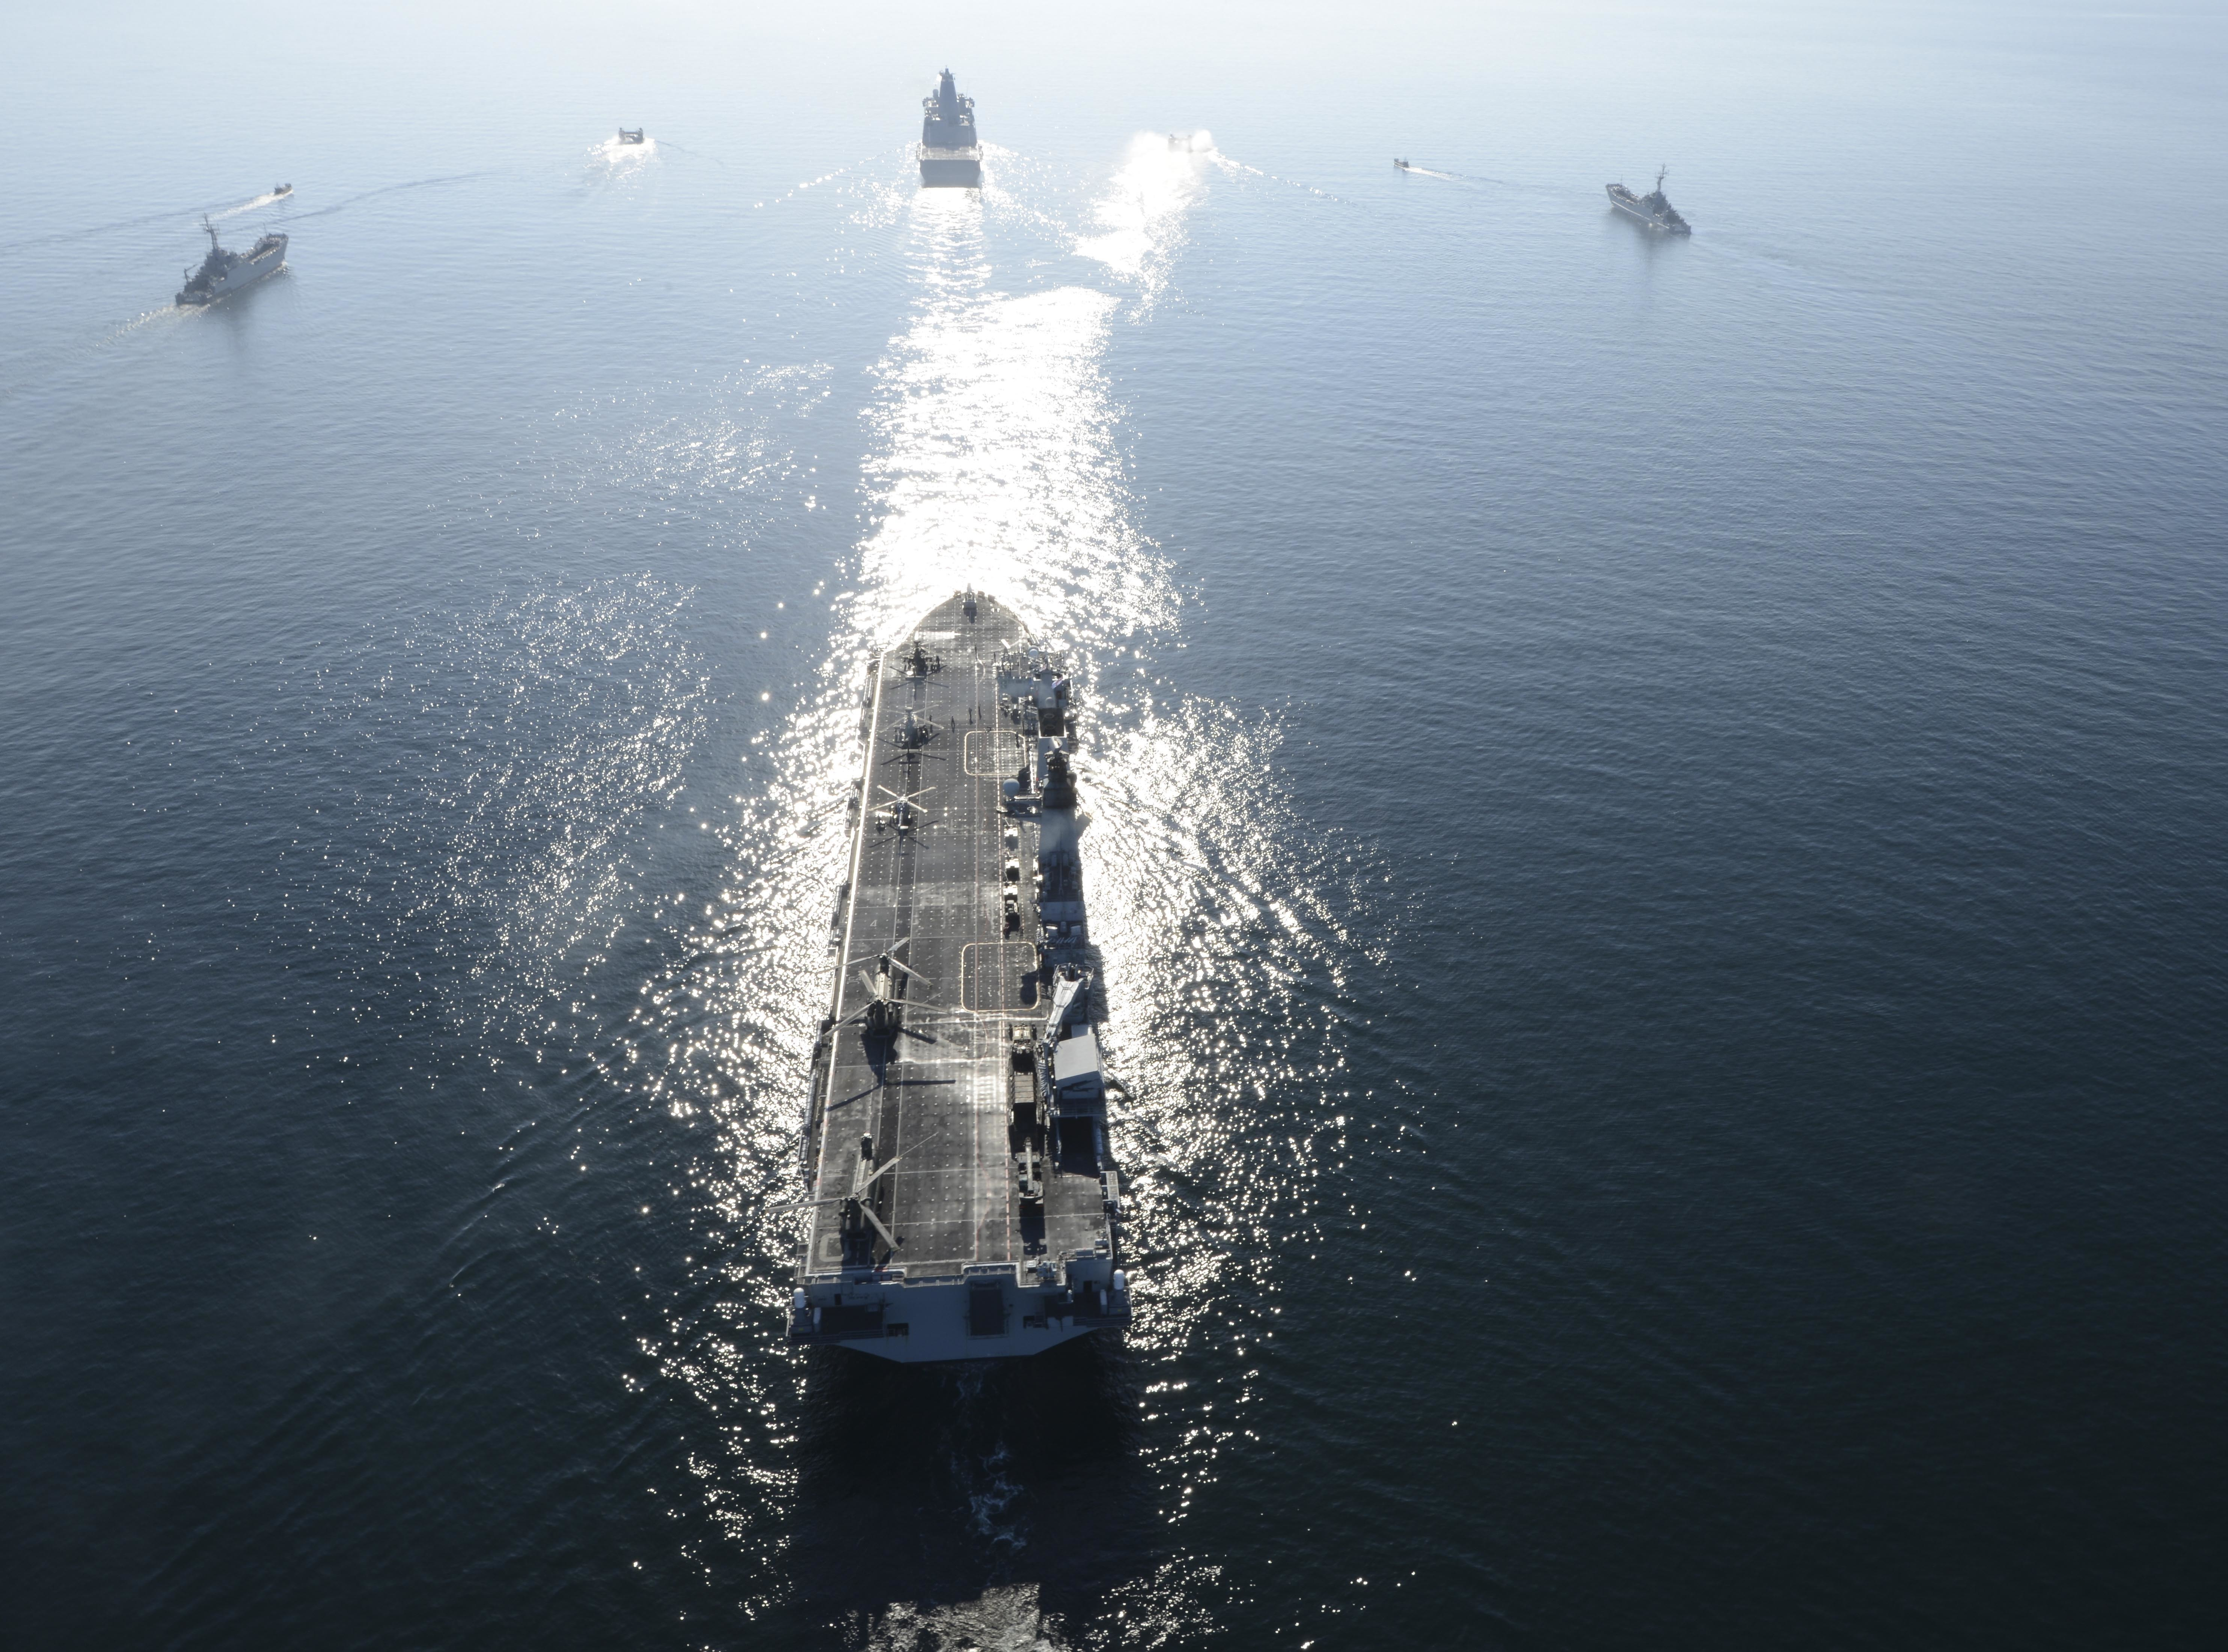 Amphibious assault ships participating in exercise Baltic Operations (BALTOPS) 2015 transit in formation off the coast of Sweden on June 12, 2015. US Navy Photo